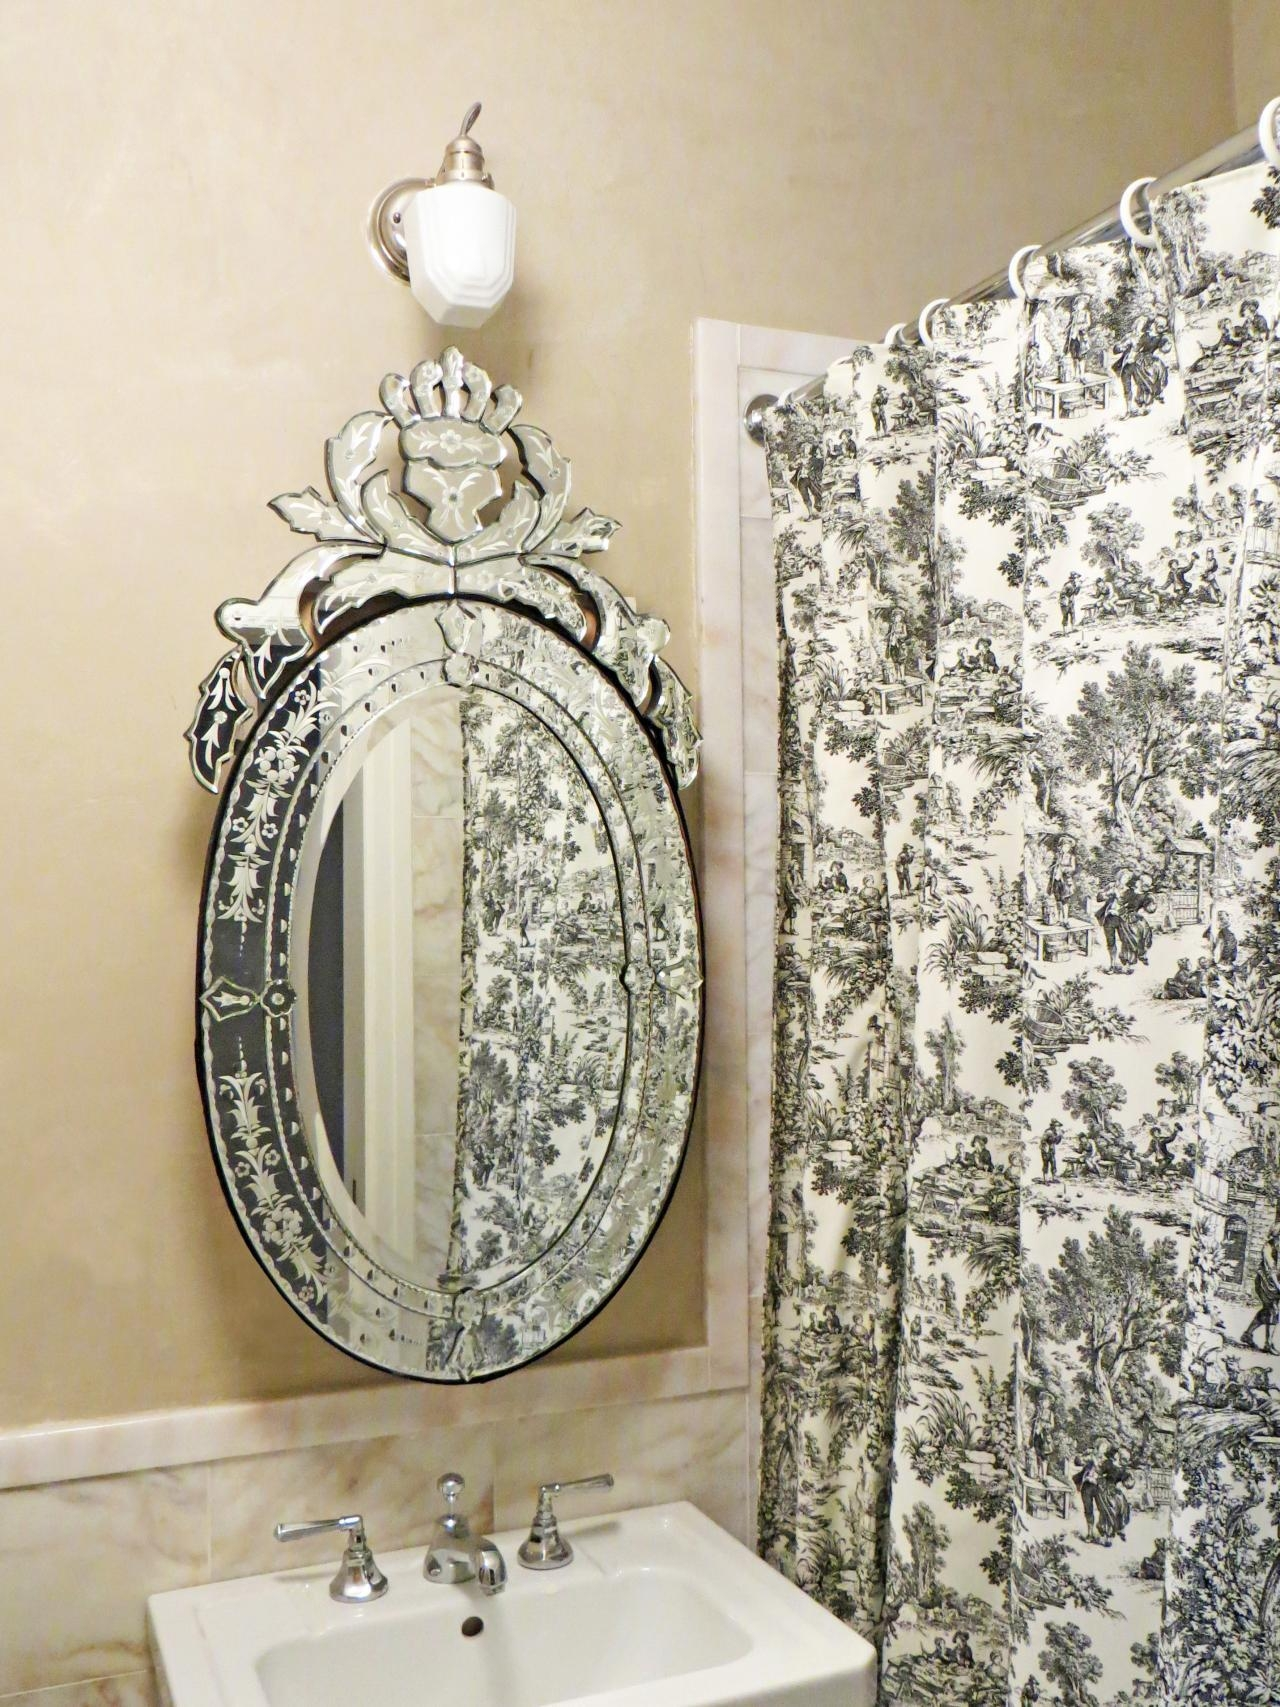 Bathroom: Bronze Framed Mirror | Oval Mirrors For Bathroom | Oval Intended For Venetian Oval Mirror (Image 7 of 20)